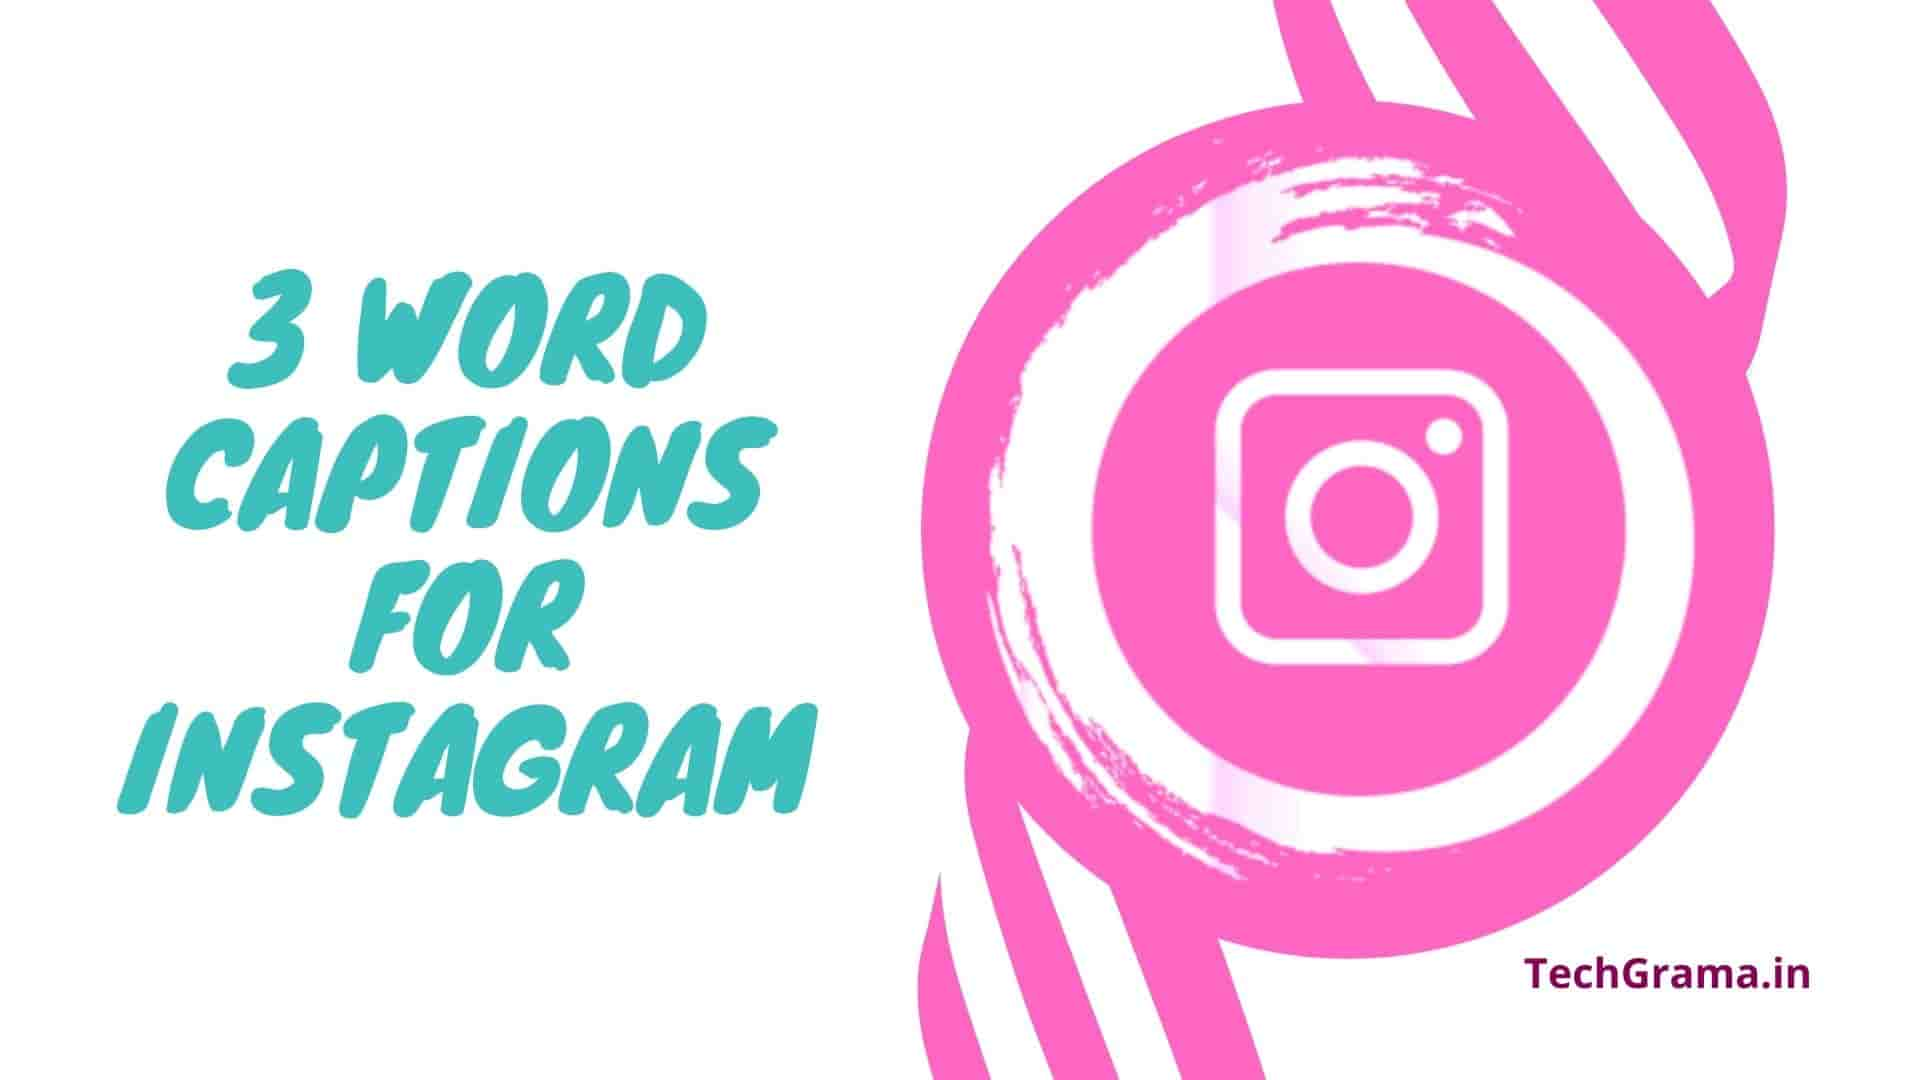 Best 3 Word Captions For Instagram, Short Instagram Captions For Selfies, 3 Word Attitude Captions For Instagram, 3 Word Captions For Insta, 3 Word Quotes For Instagram, 3 Words Caption For Best Friends, Three Word Captions For Instagram, 3 Word Captions For Instagram For Girl, Three Word Captions For Instagram, 3 Word Captions For Instagram 2021, 3 Word Captions For Instagram in Hindi, 2-3 Words Captions For Instagram, Instagram Captions For 3 Best Friends, New Short Instagram Captions For Selfies.